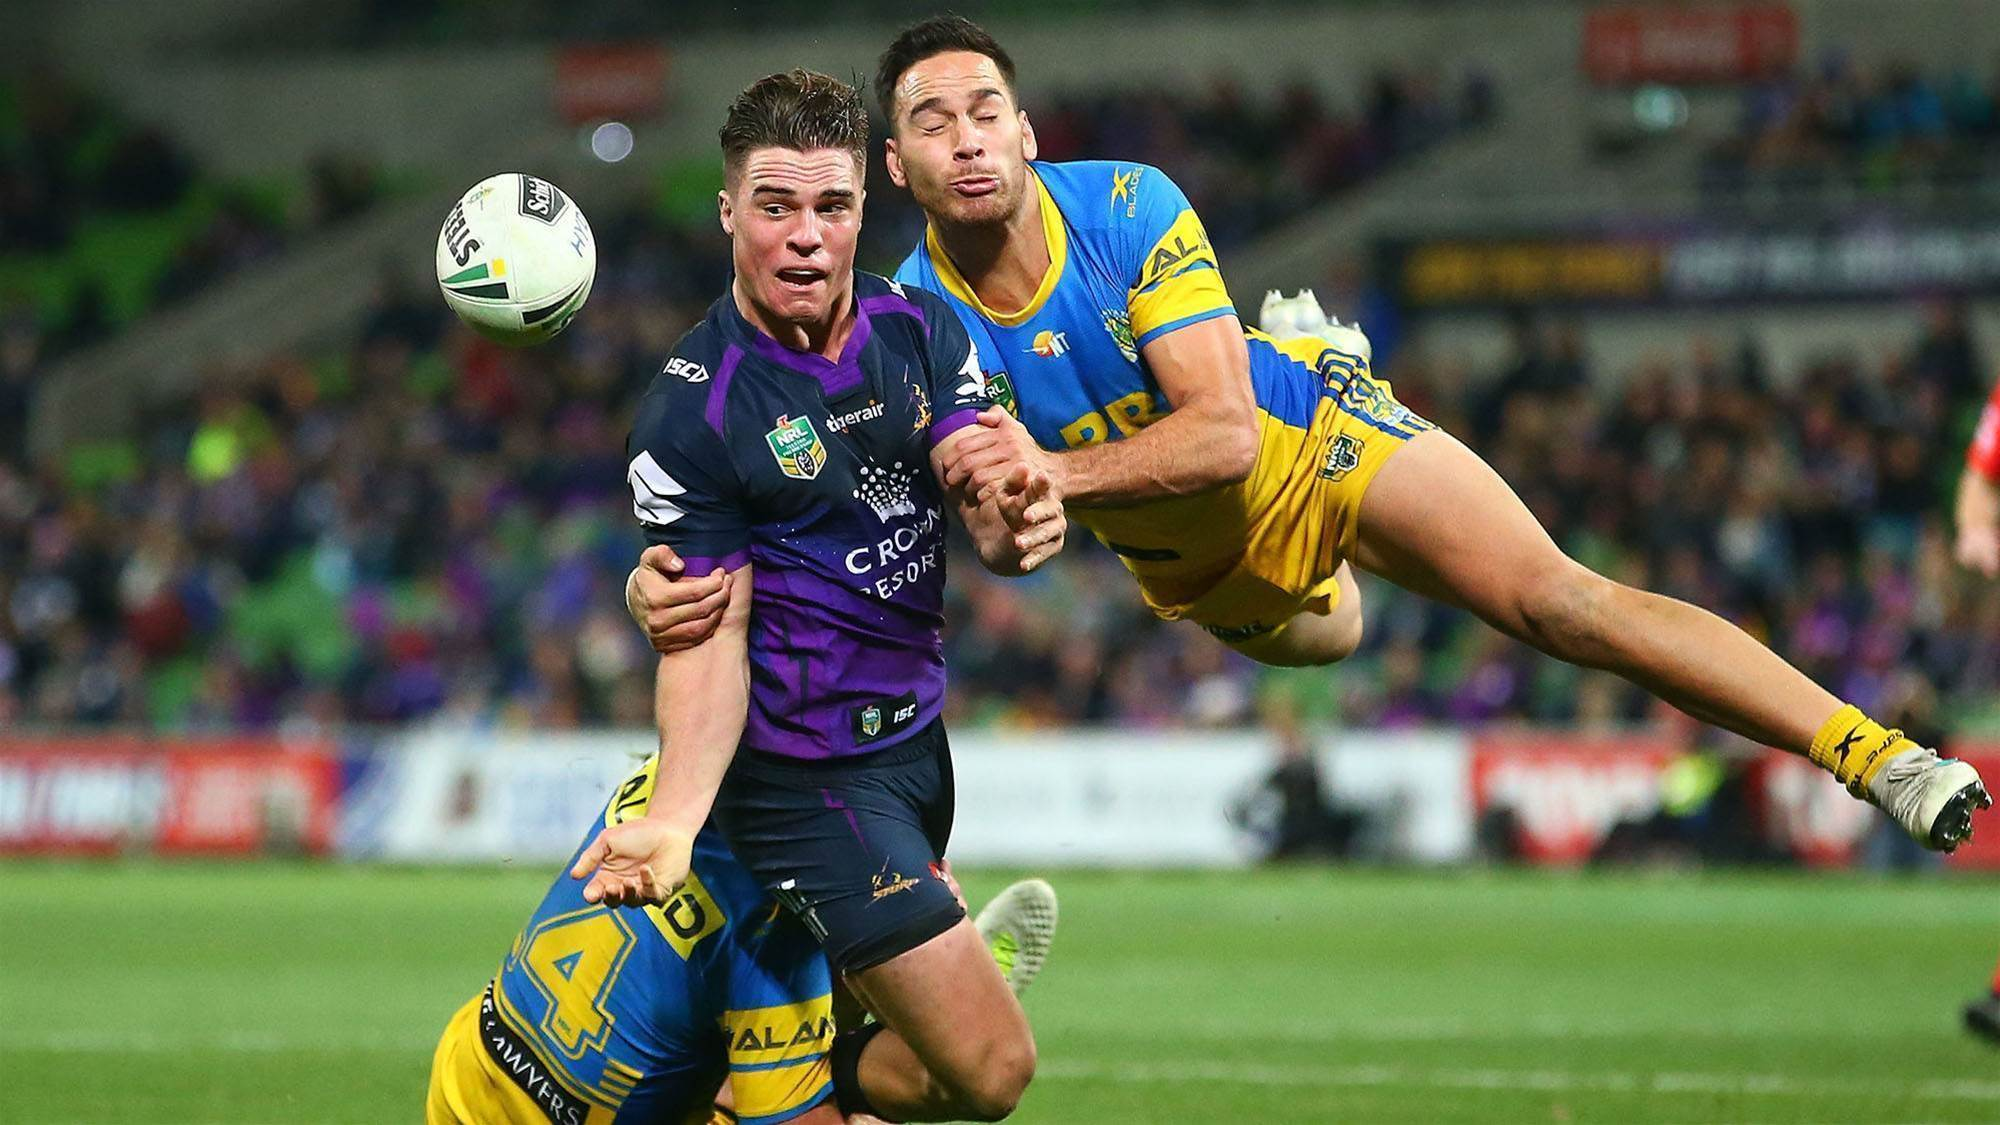 Back to business - the ultimate NRL round 19 preview